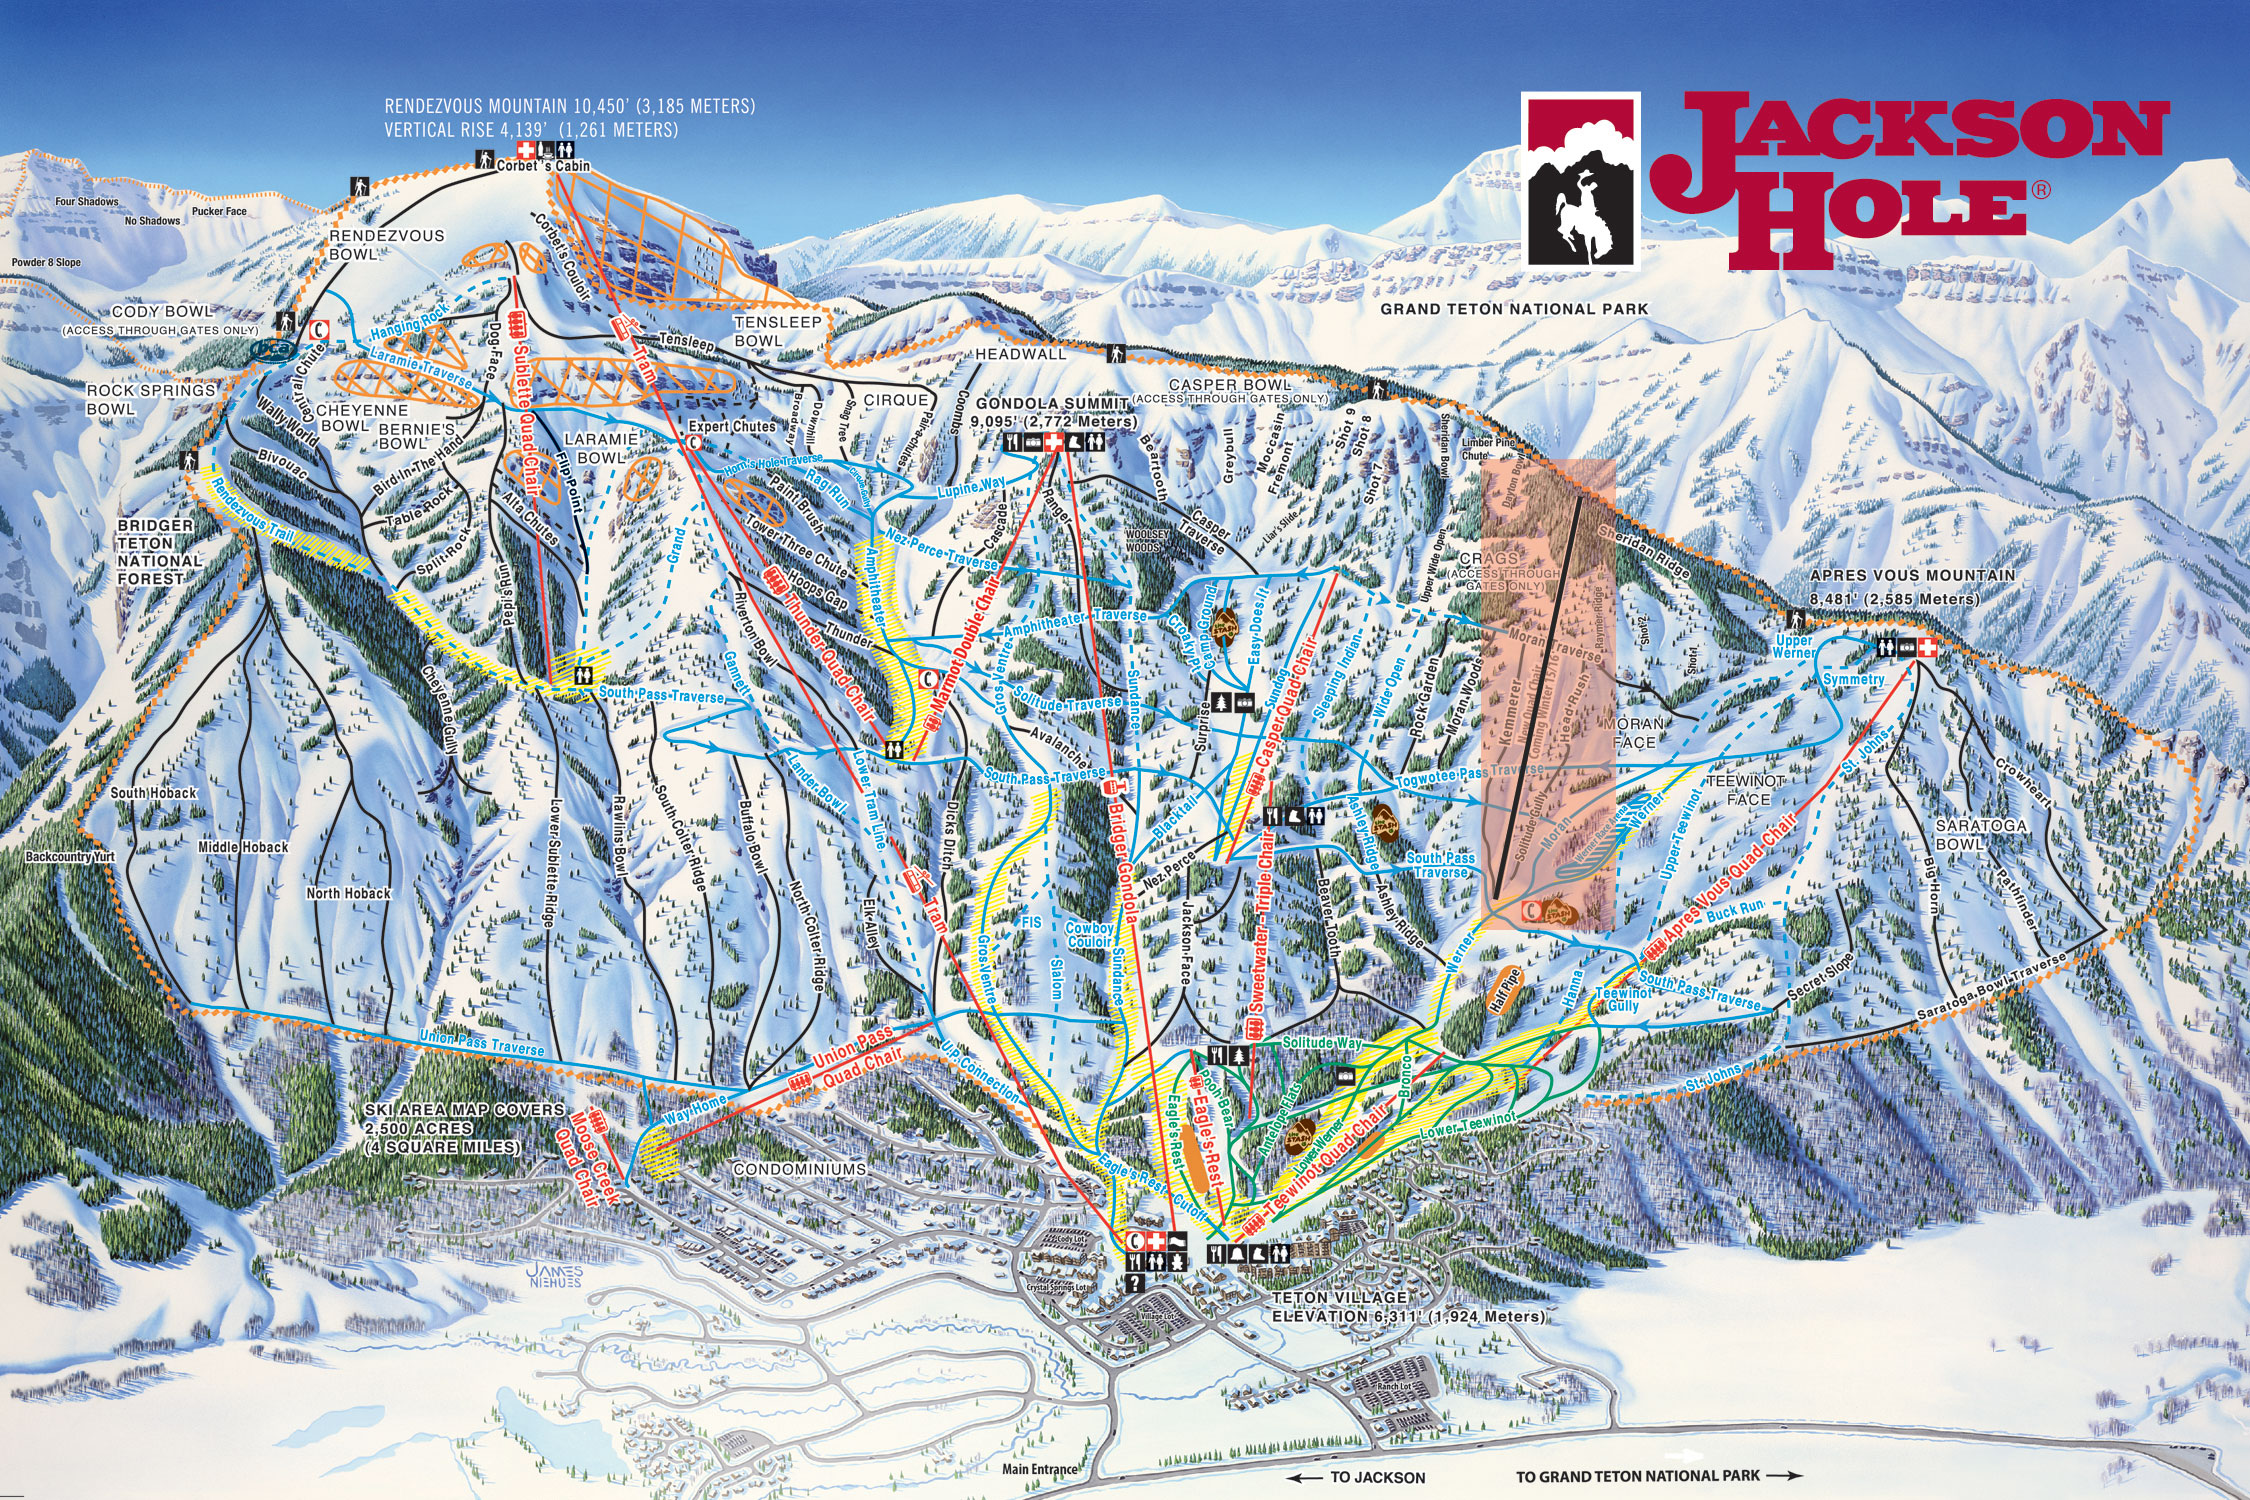 The Teton Lift, highlighted in the red box, will start spinning chairs in the 2015-16 season.